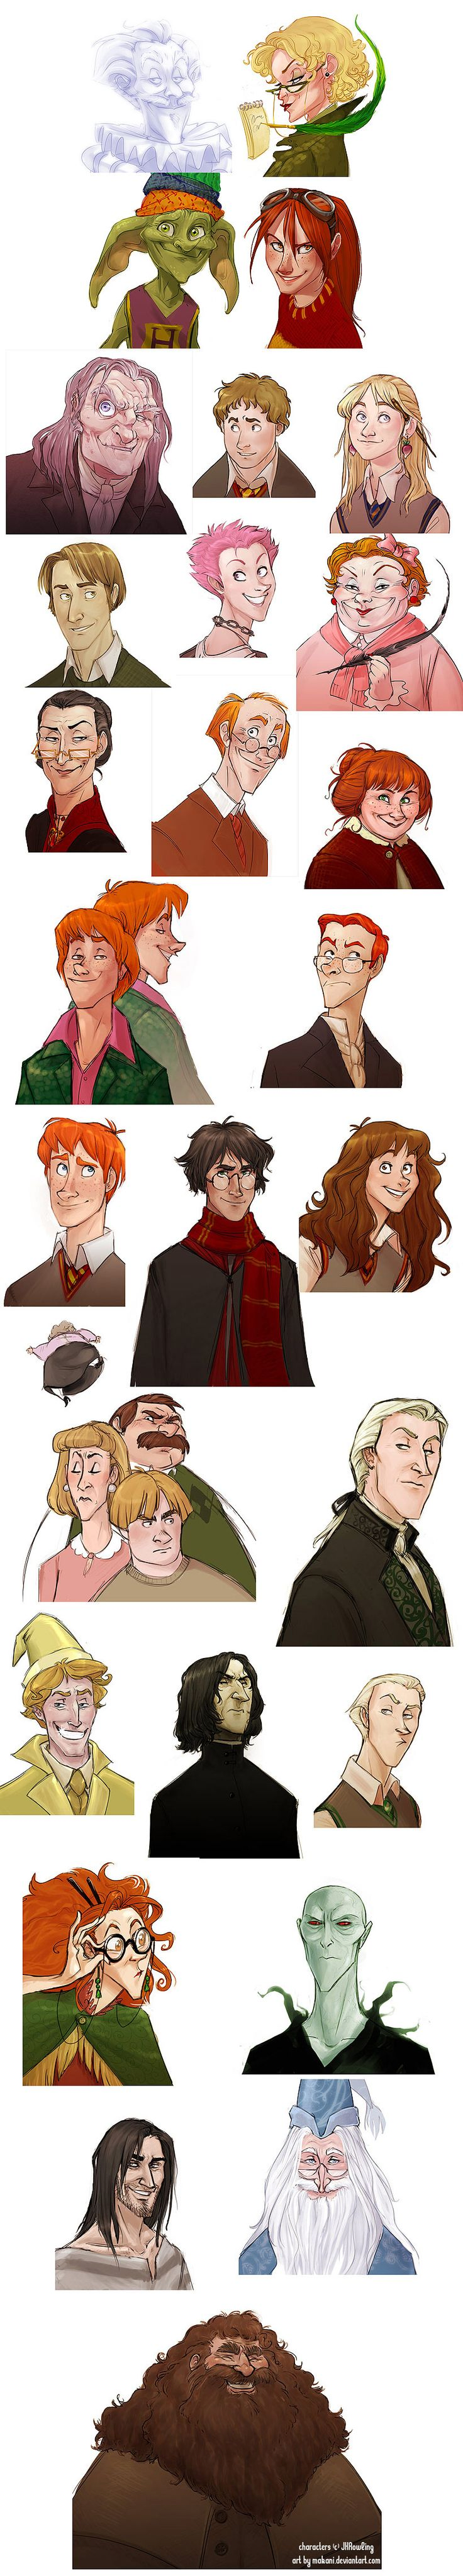 For the love of the Potter-Geek  |  Harry Potter Characters by Makani